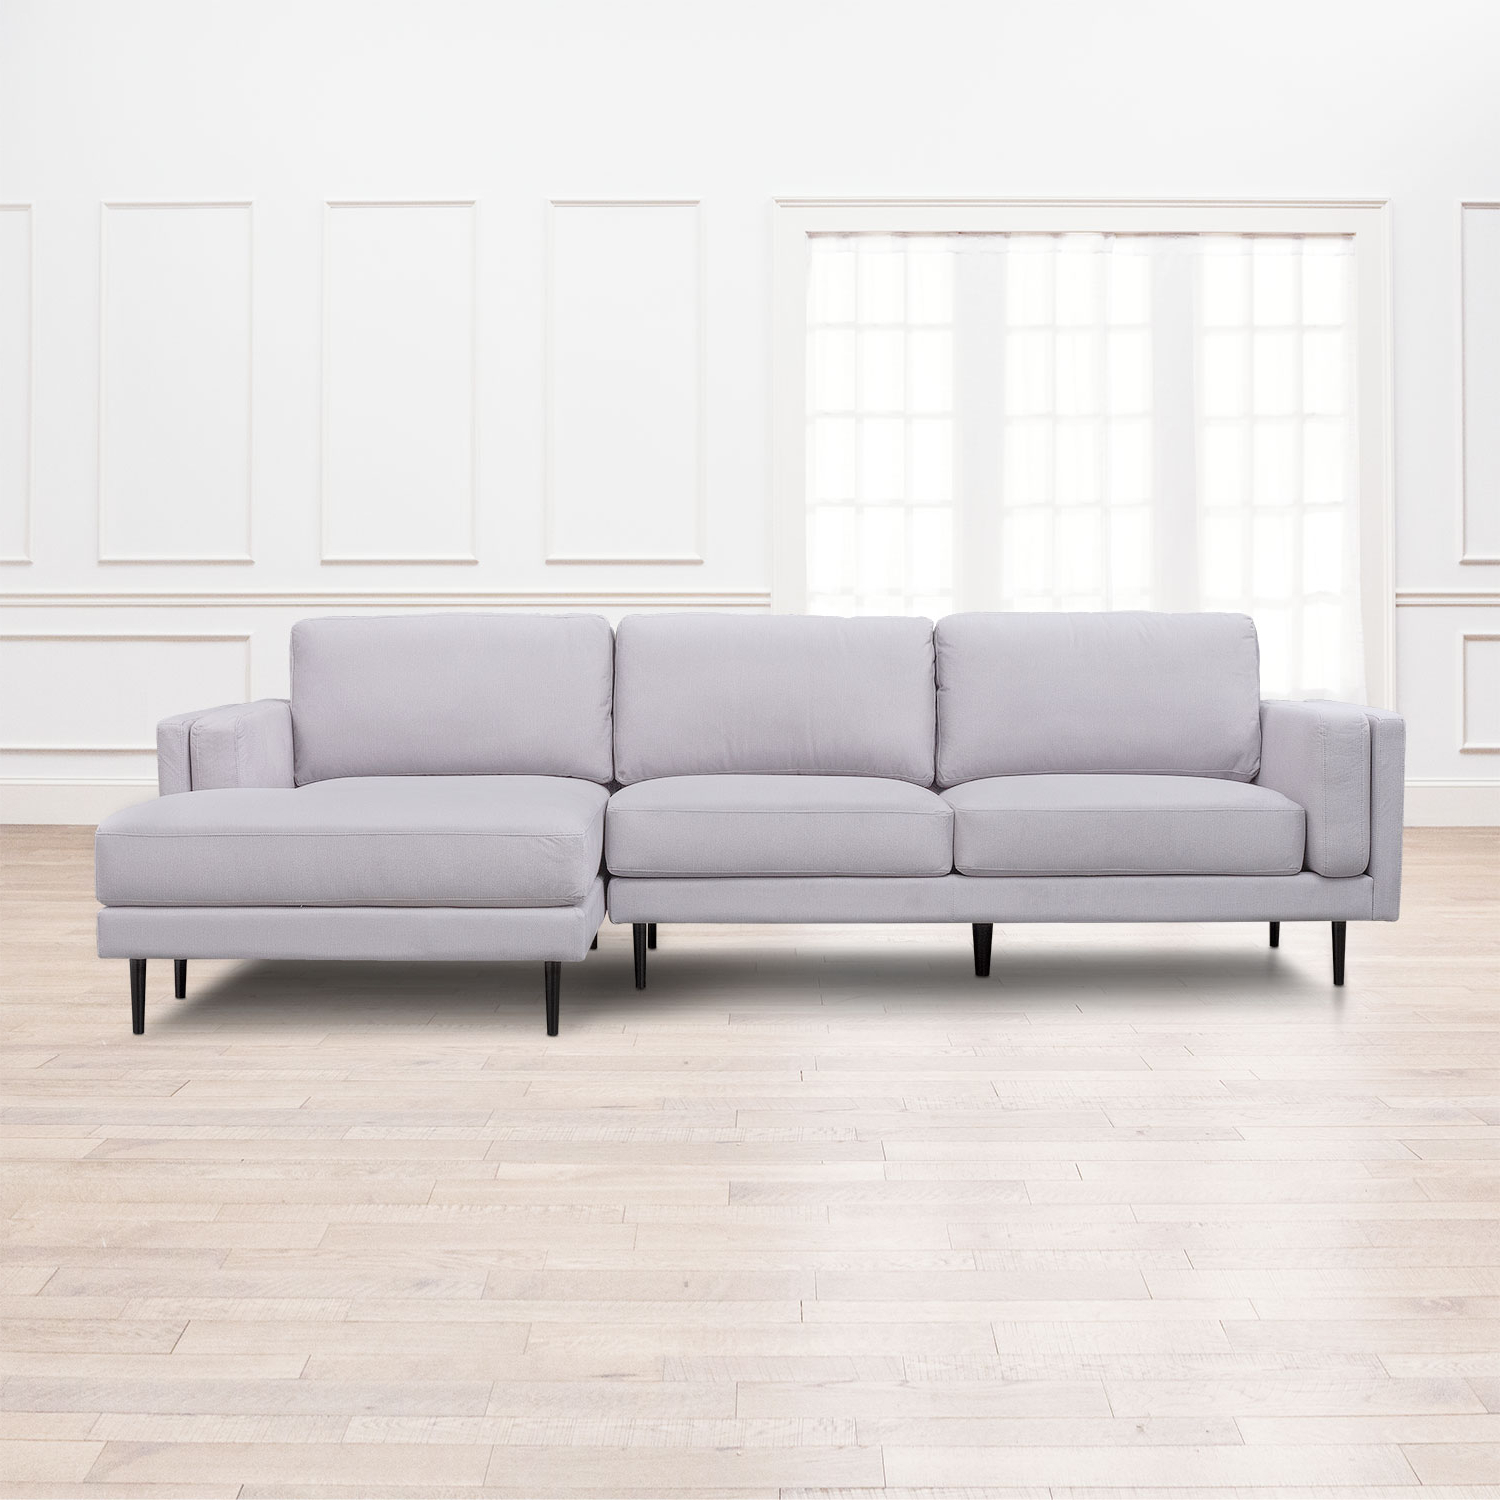 Most Recent West End 2 Piece Sectional With Right Facing Chaise – Light Gray In Mcdade Graphite 2 Piece Sectionals With Raf Chaise (View 16 of 20)